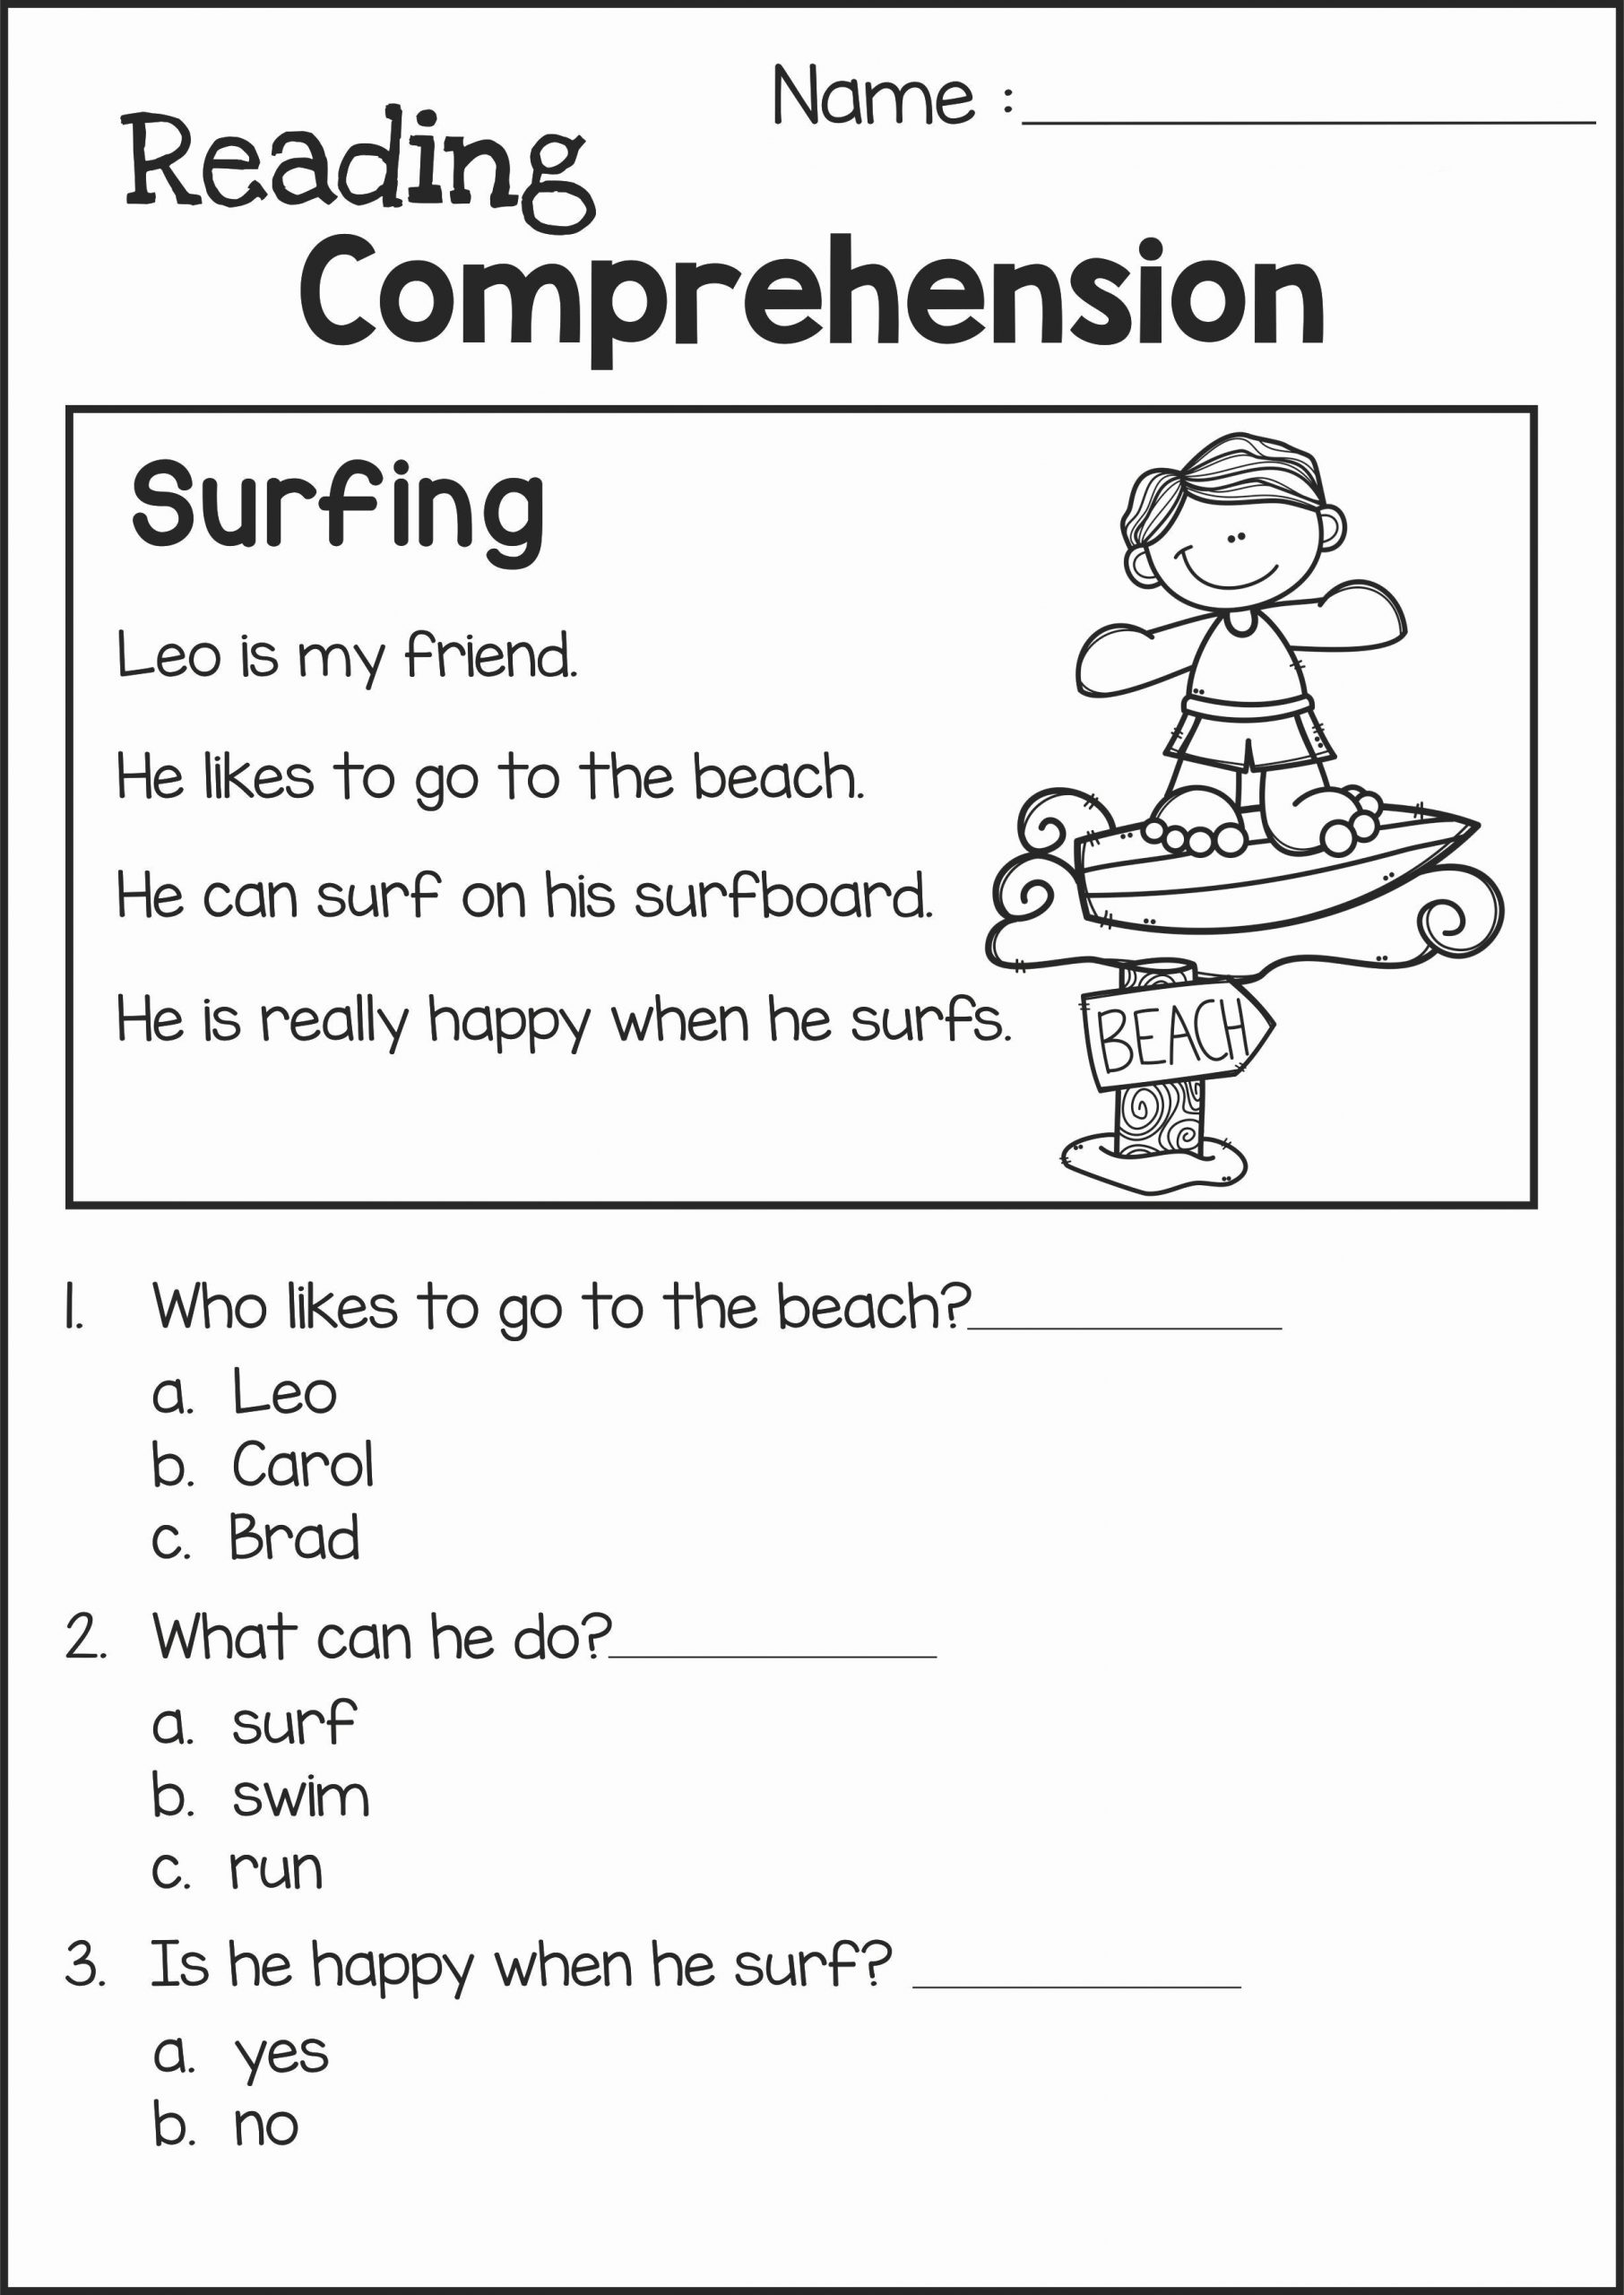 2nd Grade Grammar Worksheets Free Awesome 2nd Grade Reading Worksheets Best Coloring Pages for Kids